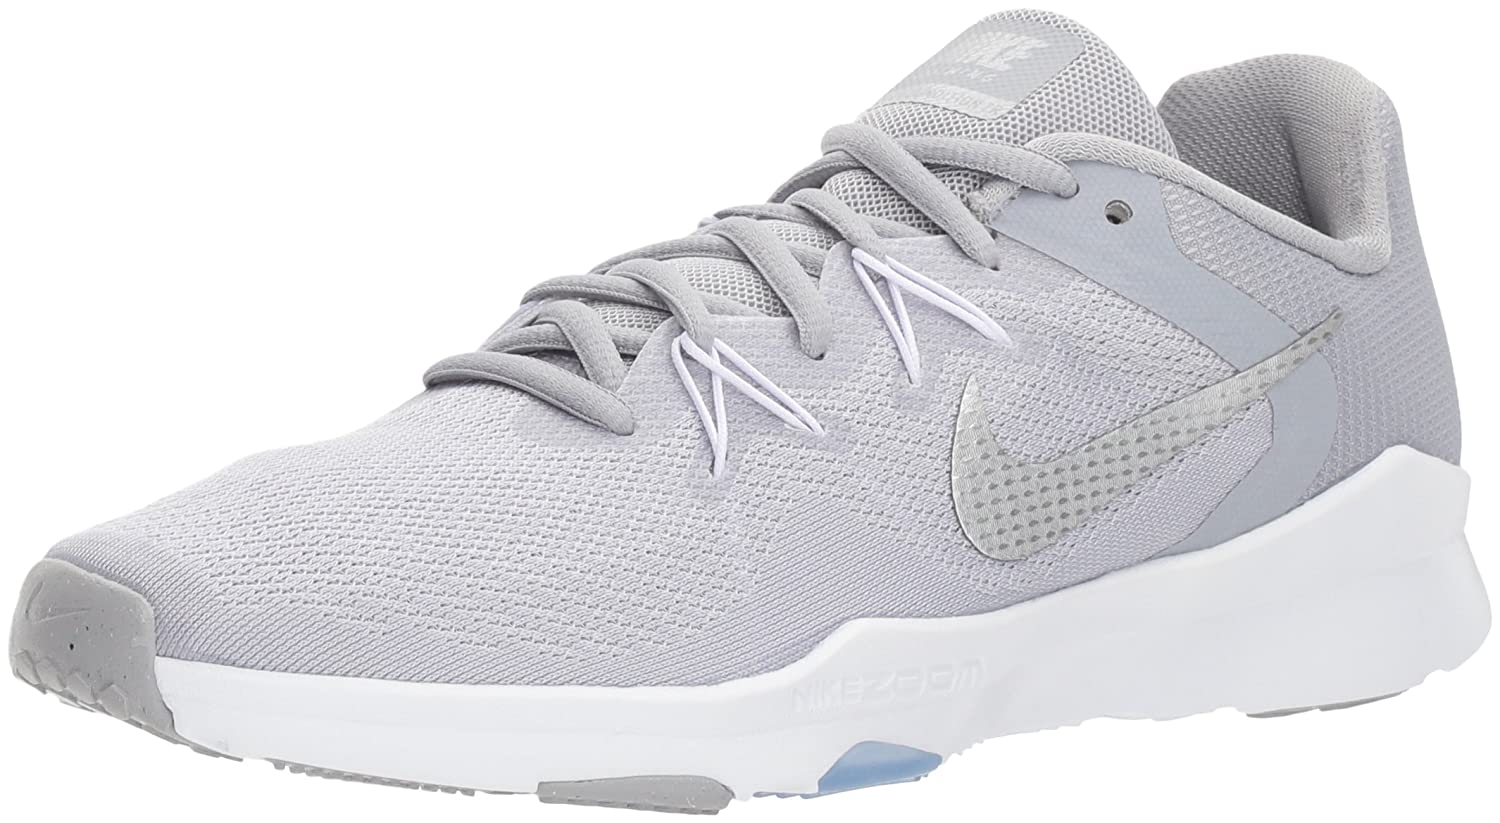 NIKE Women's Zoom Condition 2 Cross Trainer B072C3HRMB 10.5 B(M) US|Wolf Grey/Metallic Silver - White